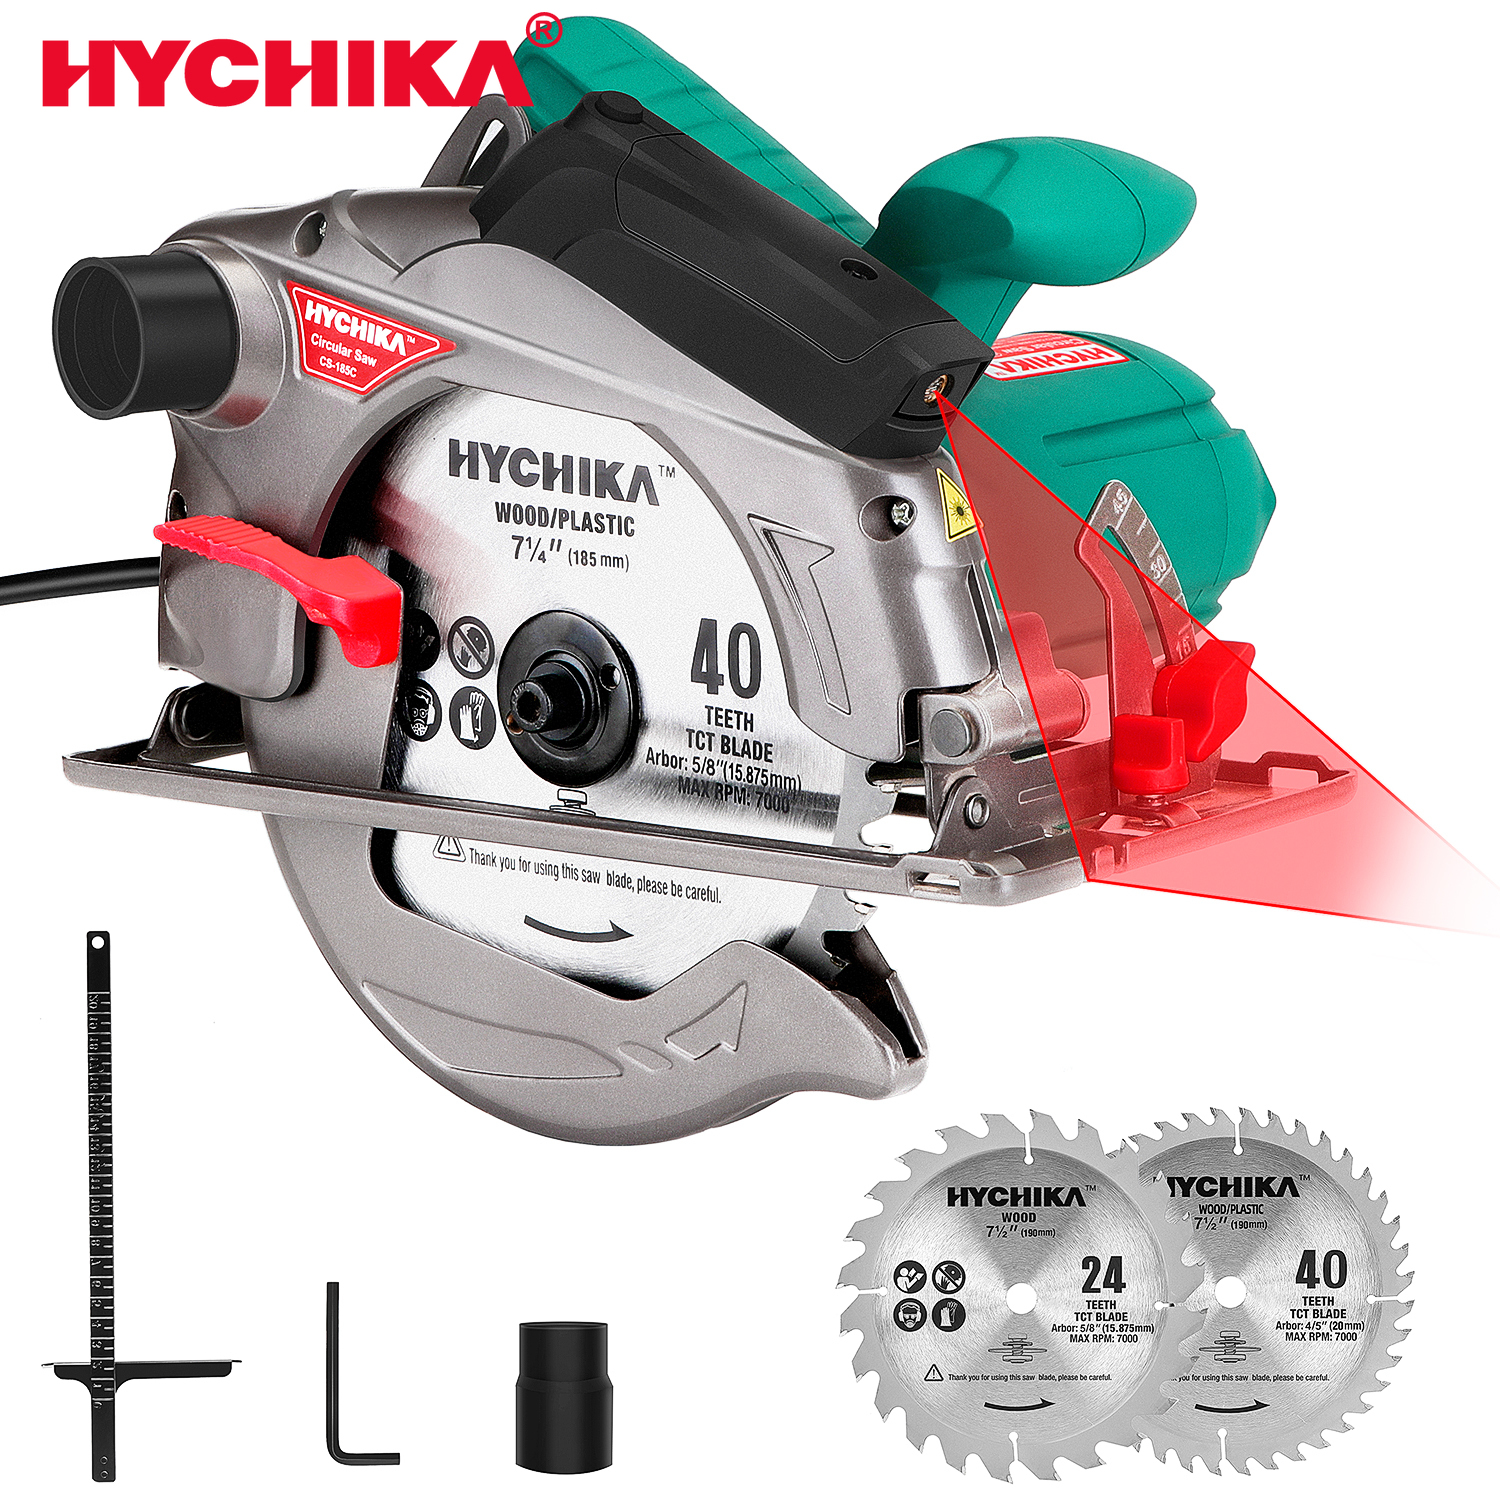 HYCHIKA Circular Saw 12.5A Electric Saw with Fixed Speed 4700RPM Laser Guide Power Tools